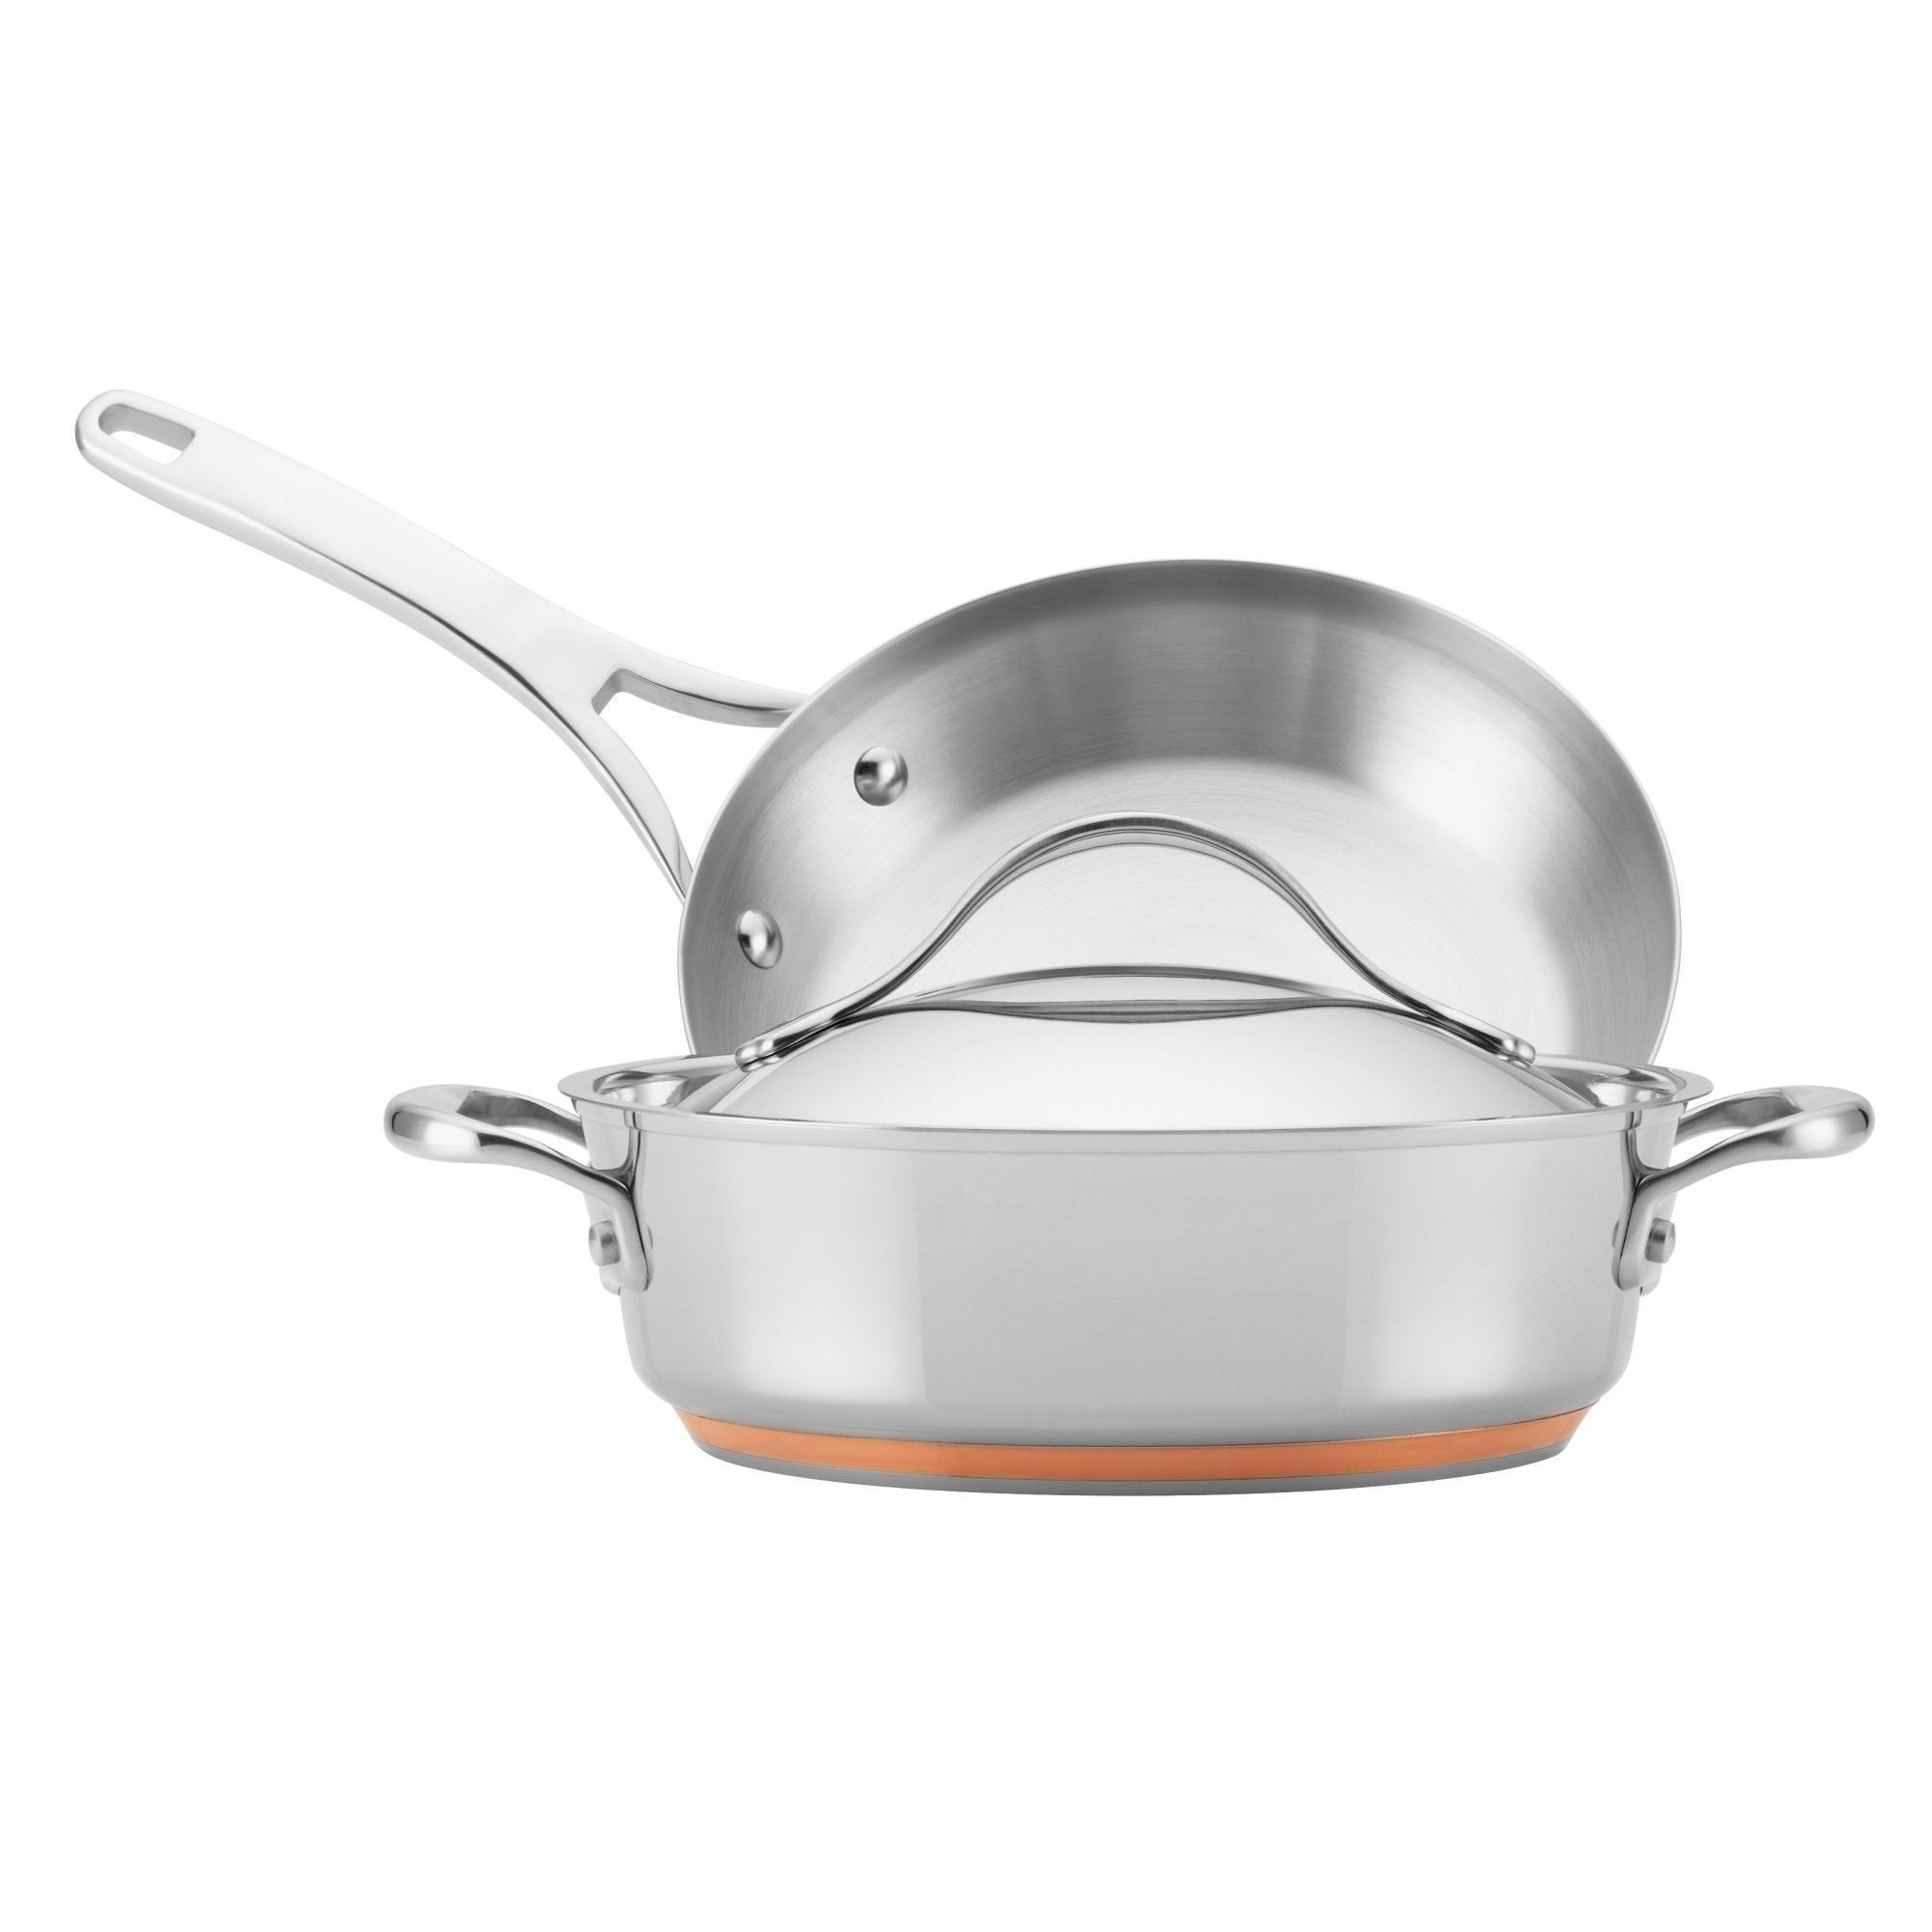 Anolon Nouvelle Copper Stainless Steel 3 Piece Set 9 5 Open Skillet 3 Qt Covered Sauteuse W Swing Lid On Sale Overstock 26060591